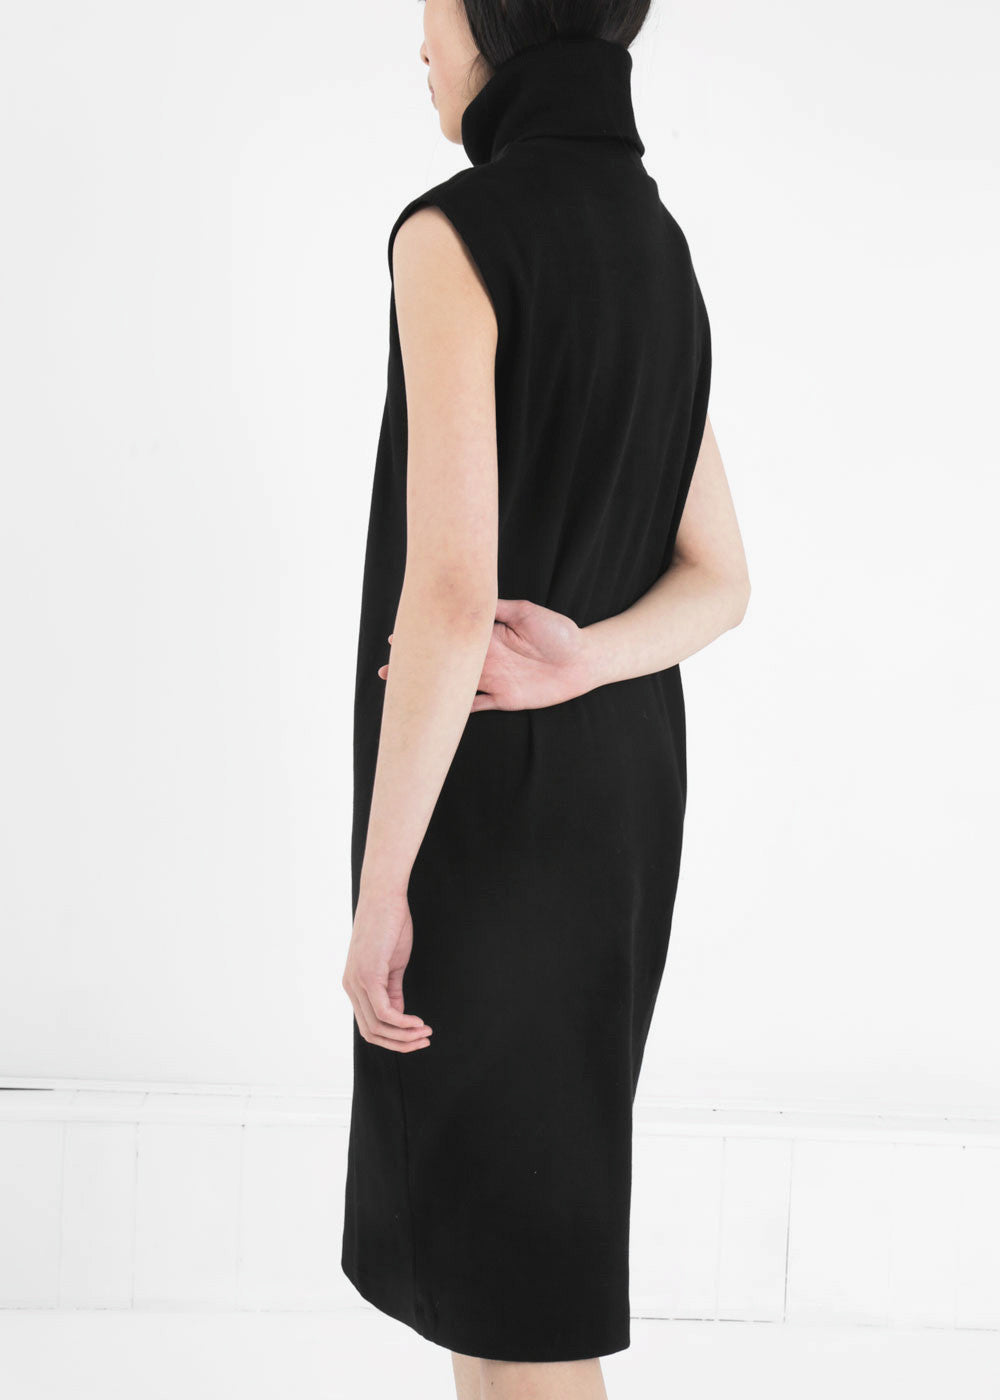 Black dress xs ribs